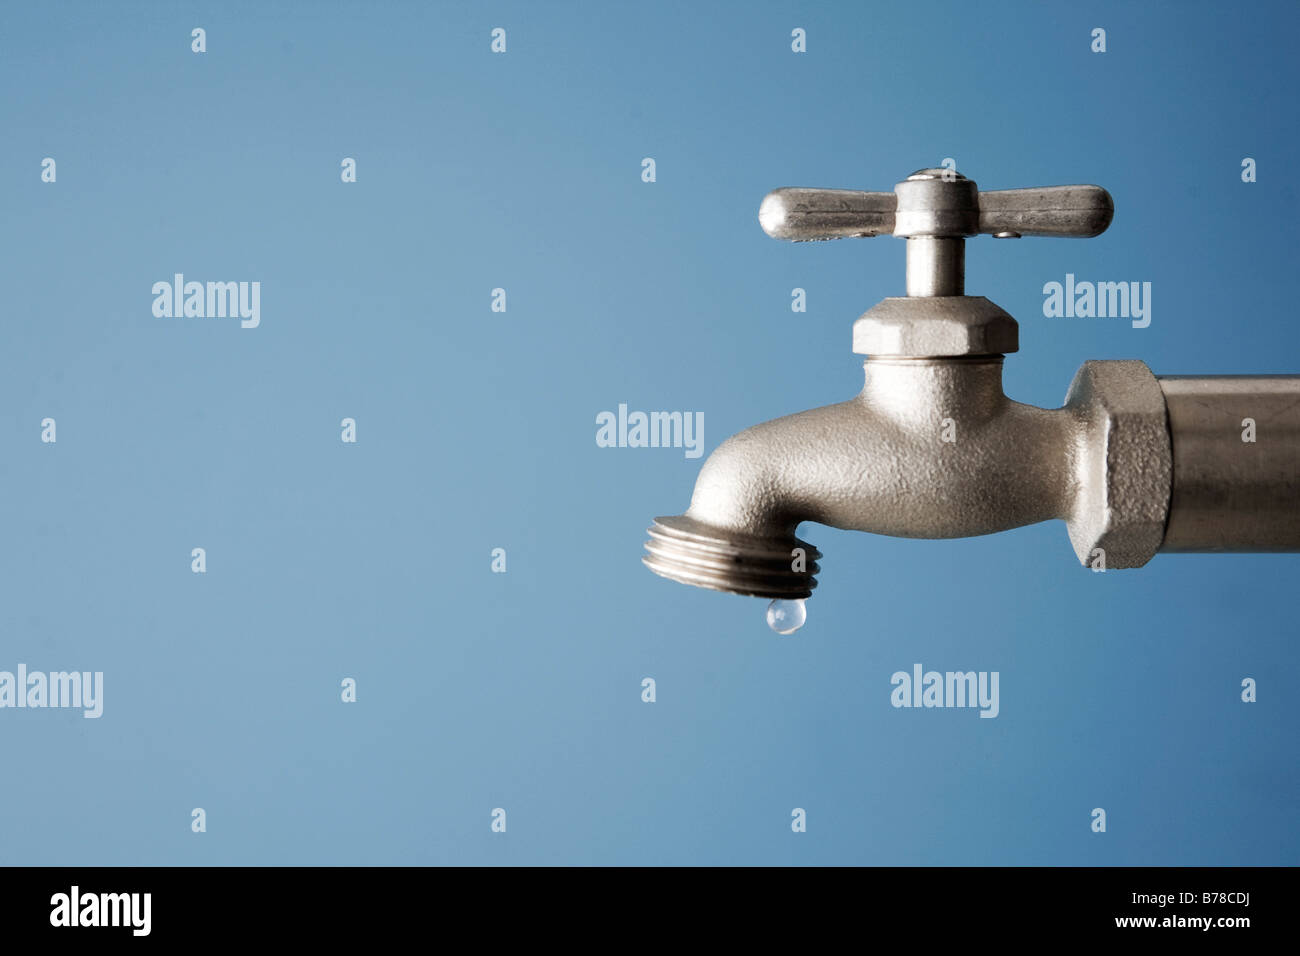 water drips from faucet - Stock Image